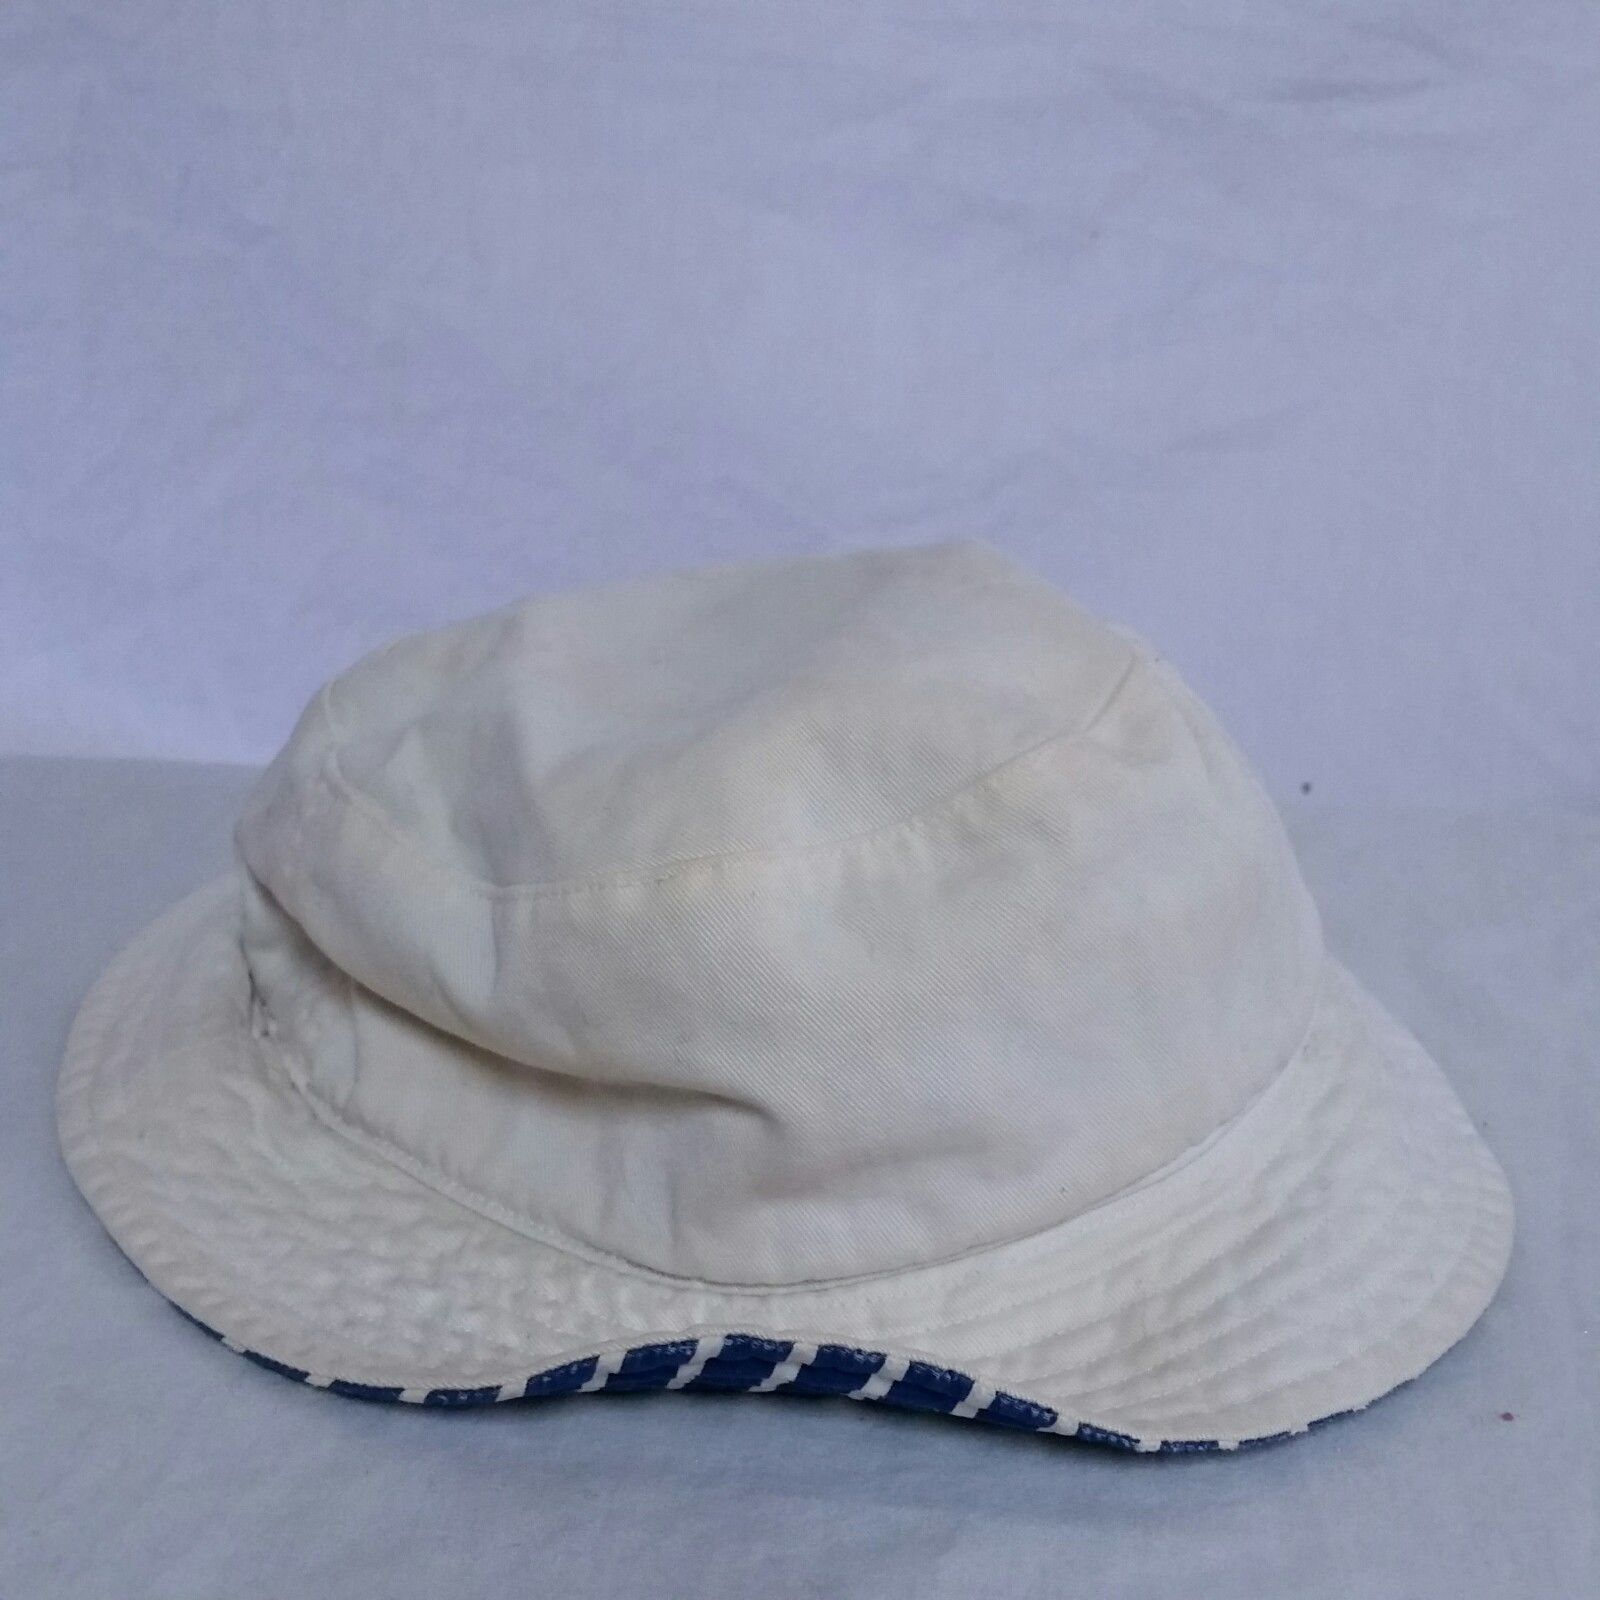 18dbe8d0392 VTG Polo Ralph Lauren Bucket Hat Crest Crown Spell Out 90s Sport Bear  Fisherman